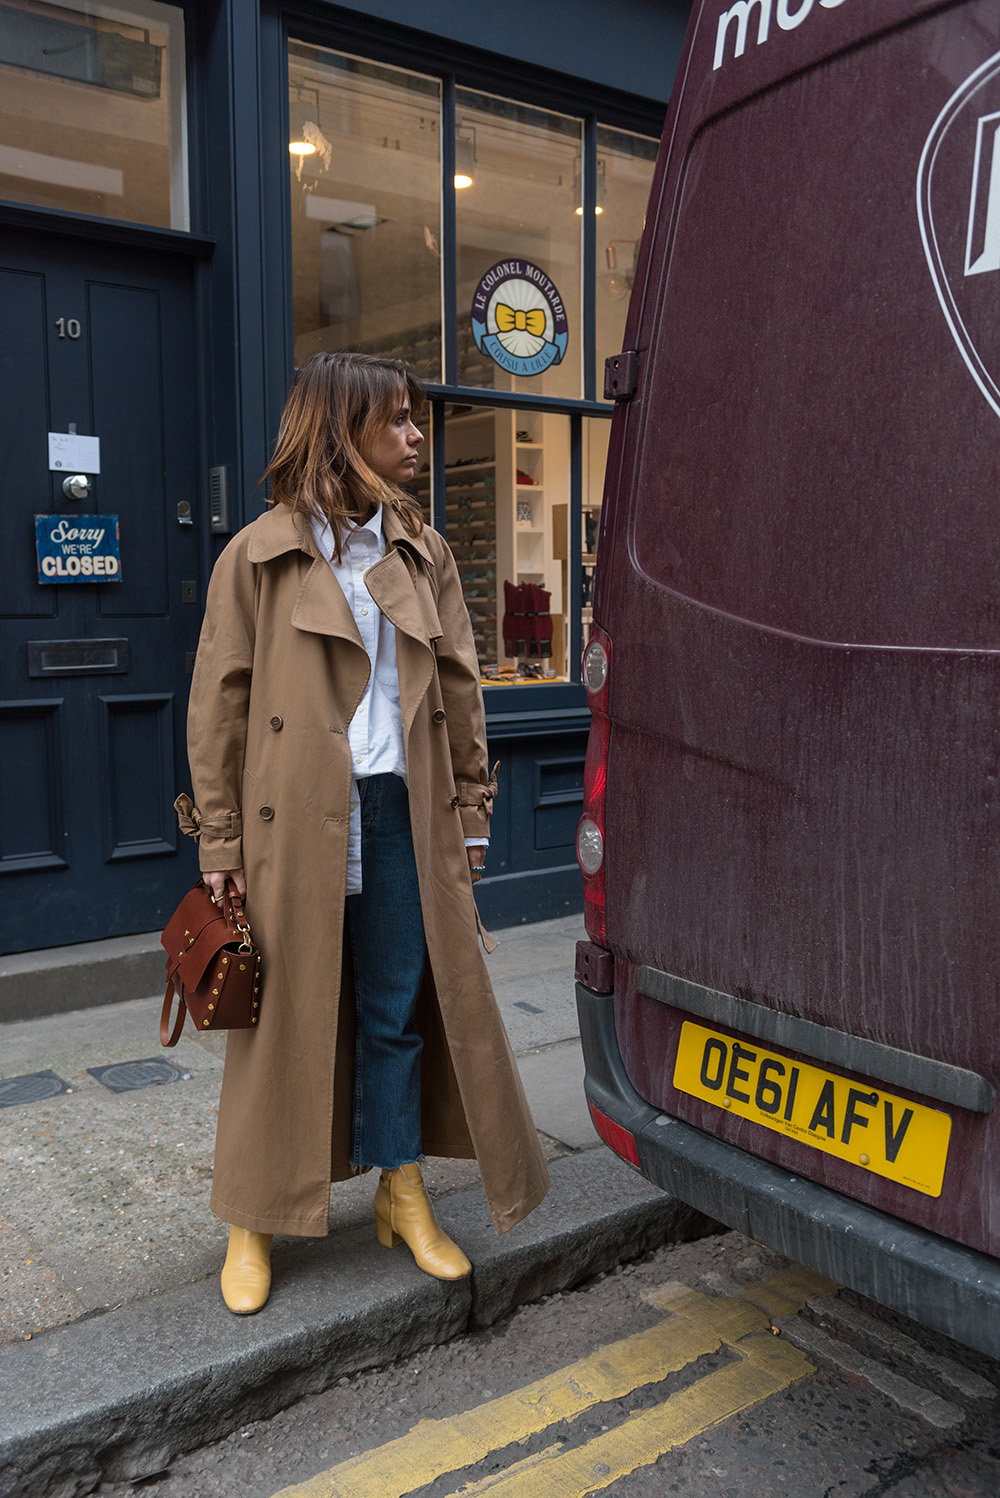 The Petticoat - London Fashion Week 17 -Photo Diary Part sandro bag camel trech yellow boots